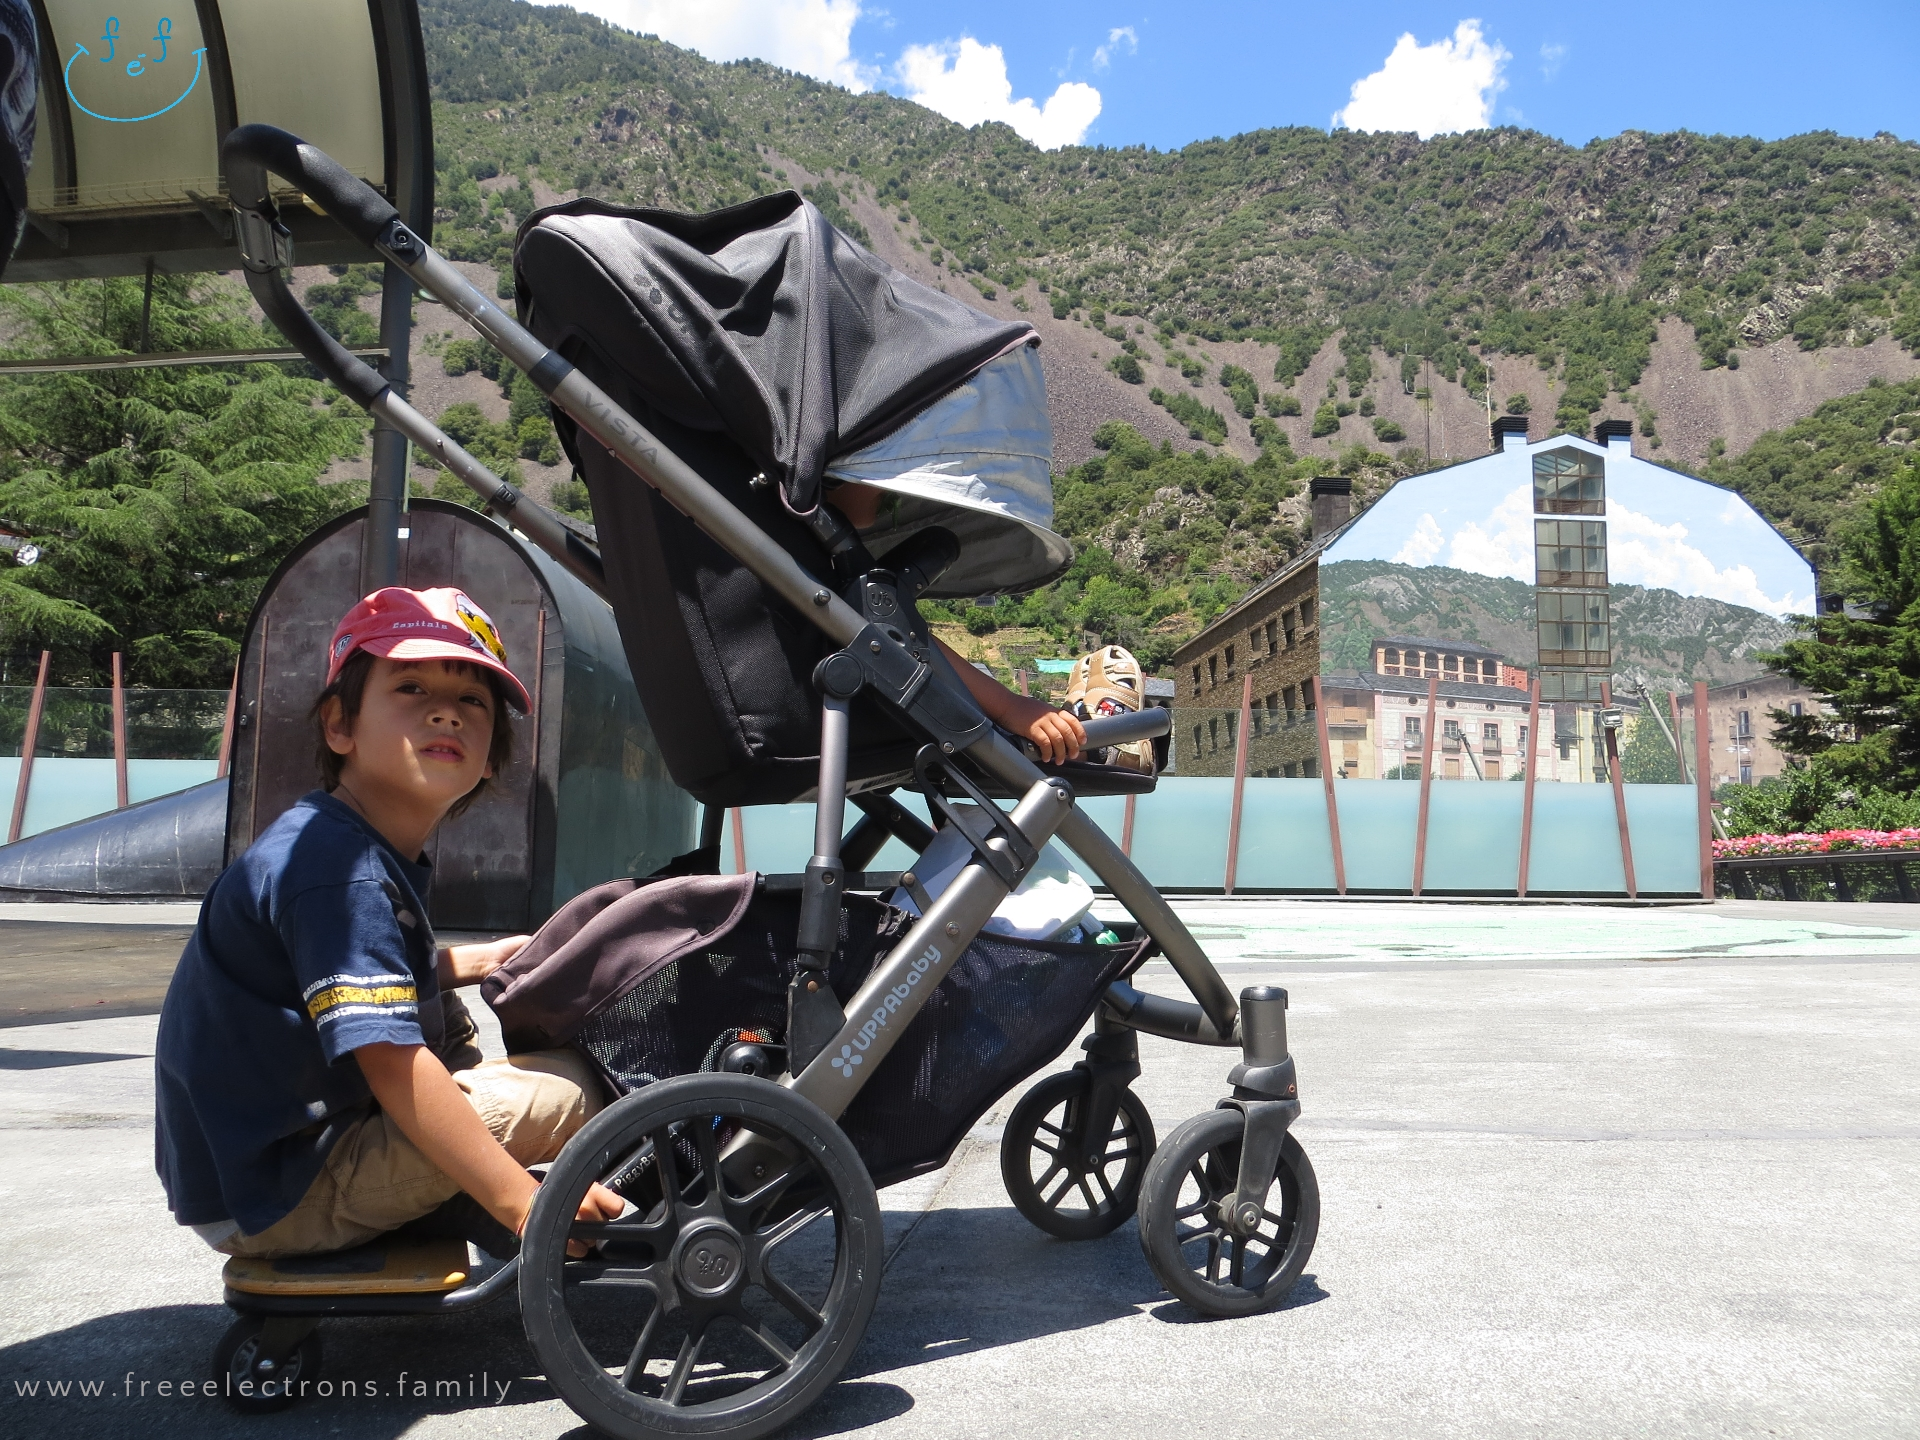 #FreeElectrons.Family - camping road trip Europe, Andorra by Uppababy stroller/pram.  Two young boys on a stroller in a wide open square, with a painted building that blends into a mountain background.  Text reads: www.freeelectrons.family